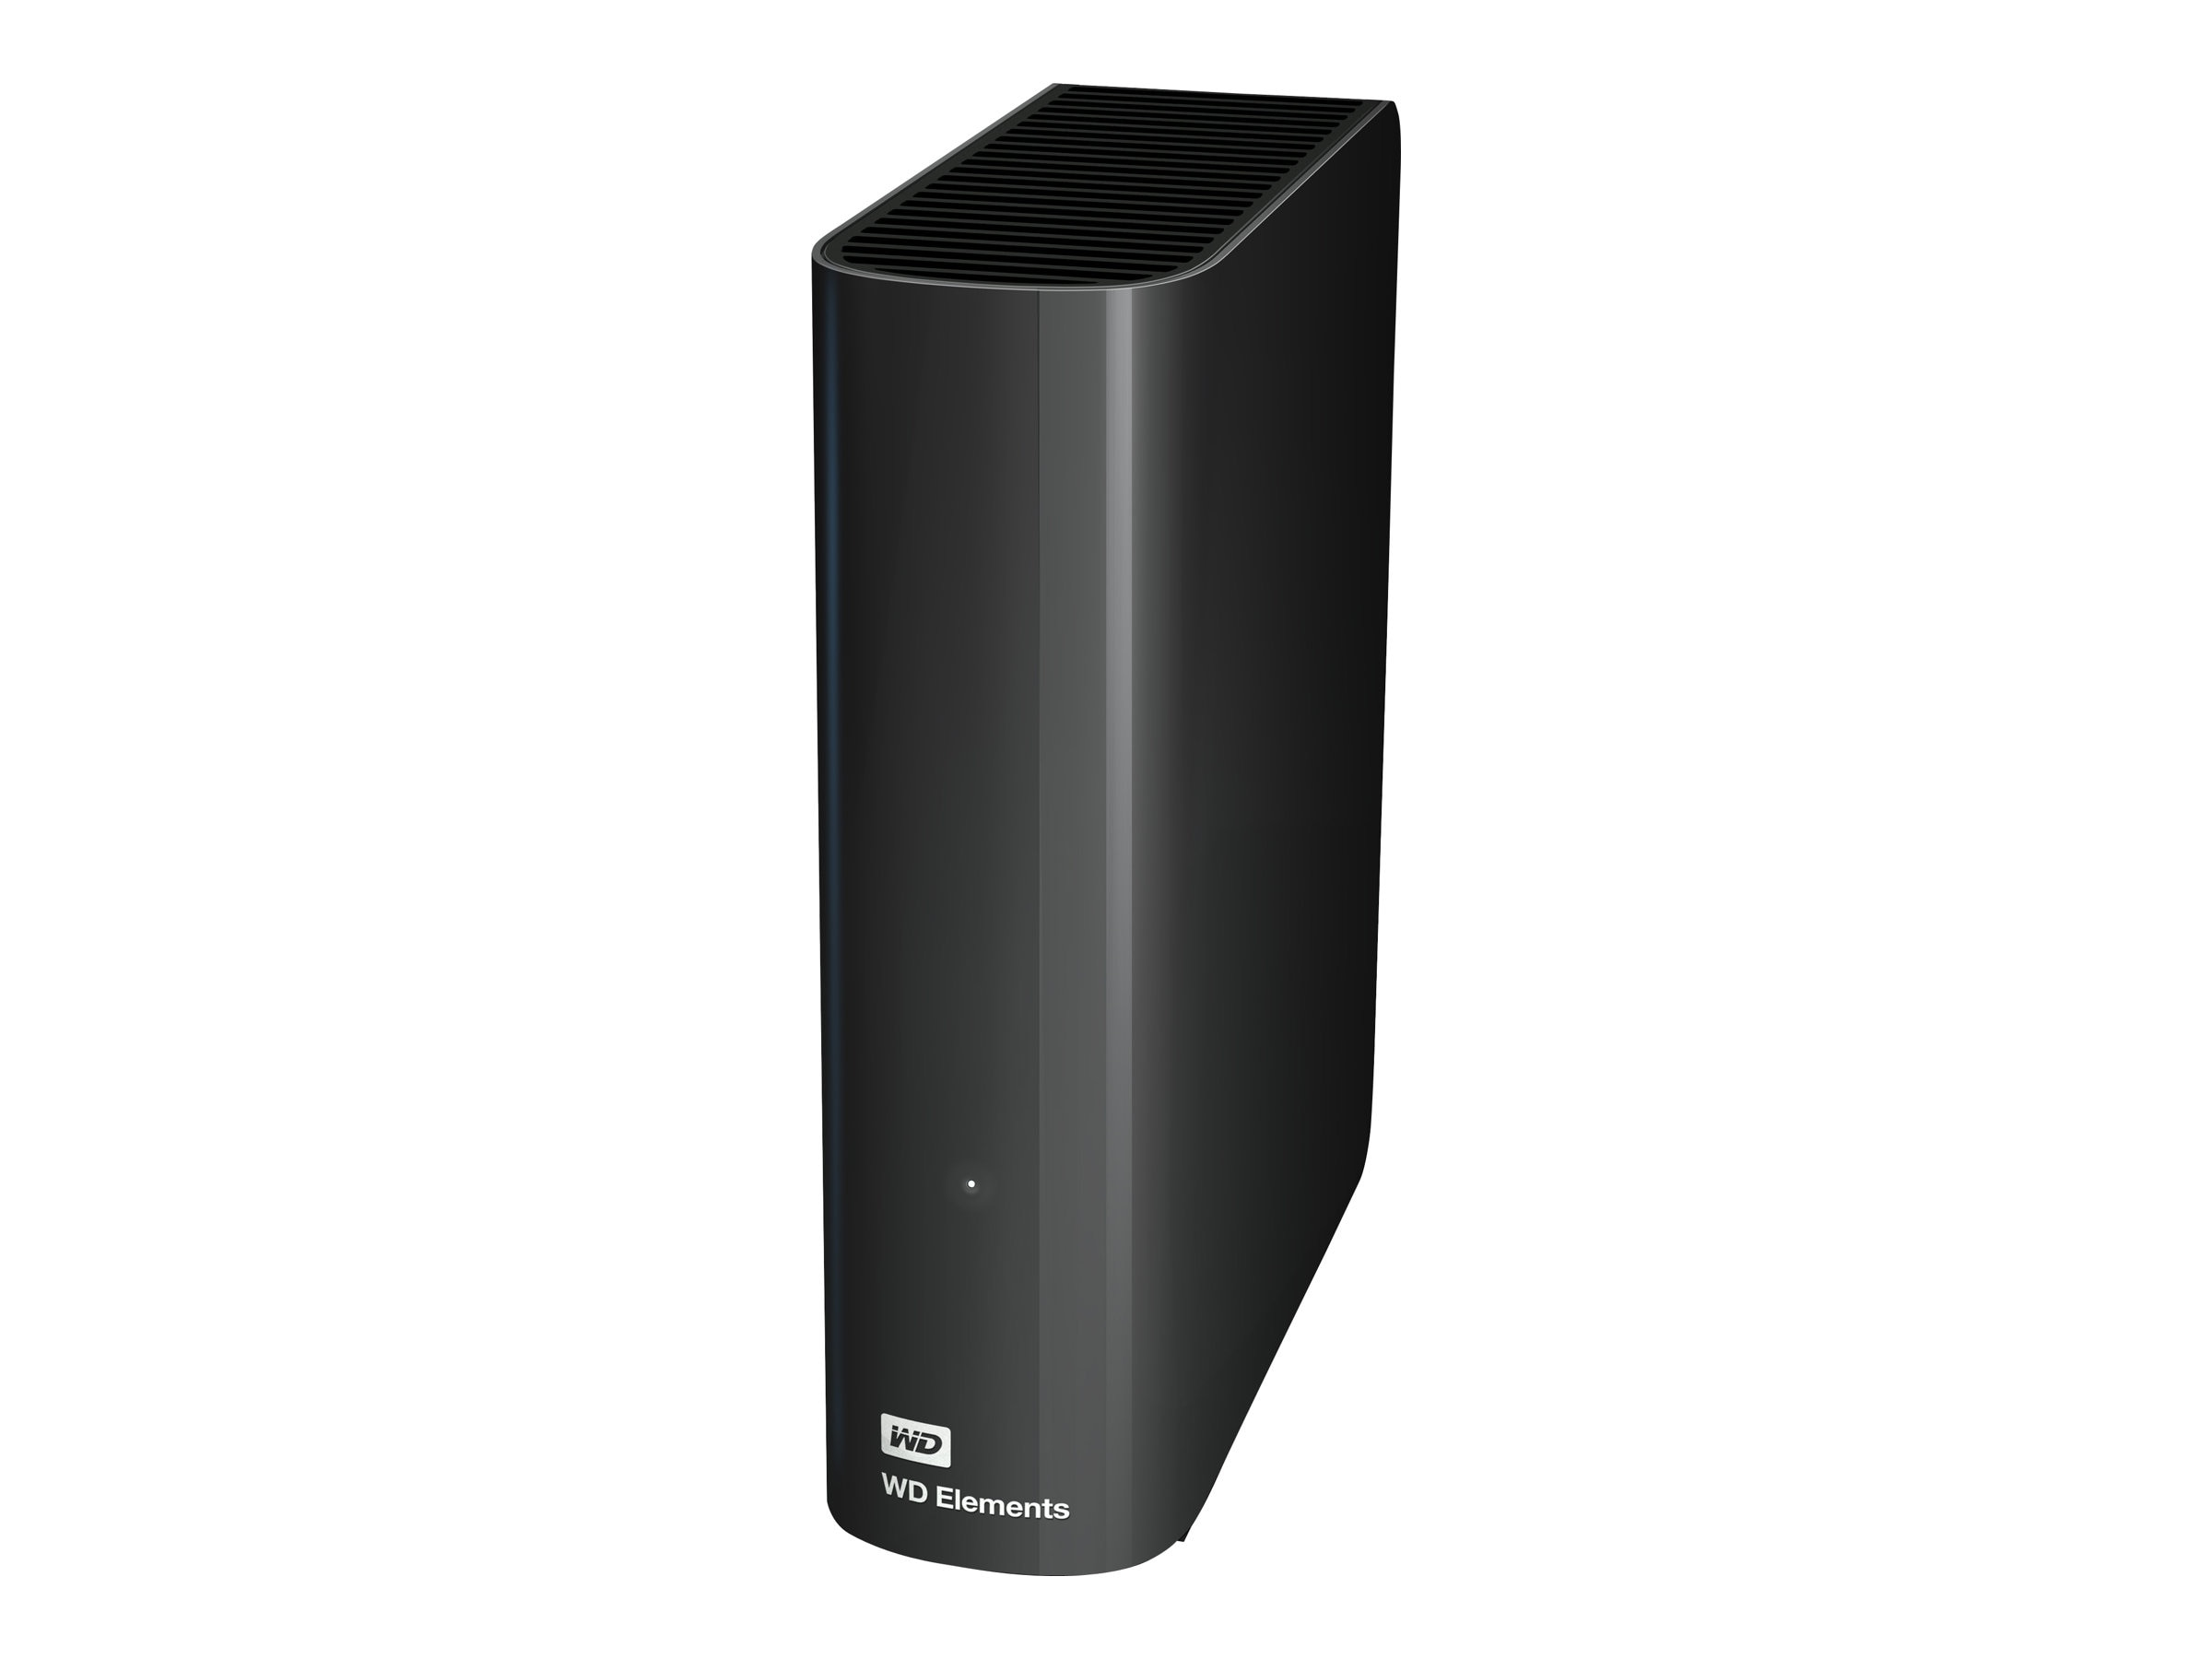 WD 5TB Elements Desktop USB 3.0 External Hard Drive